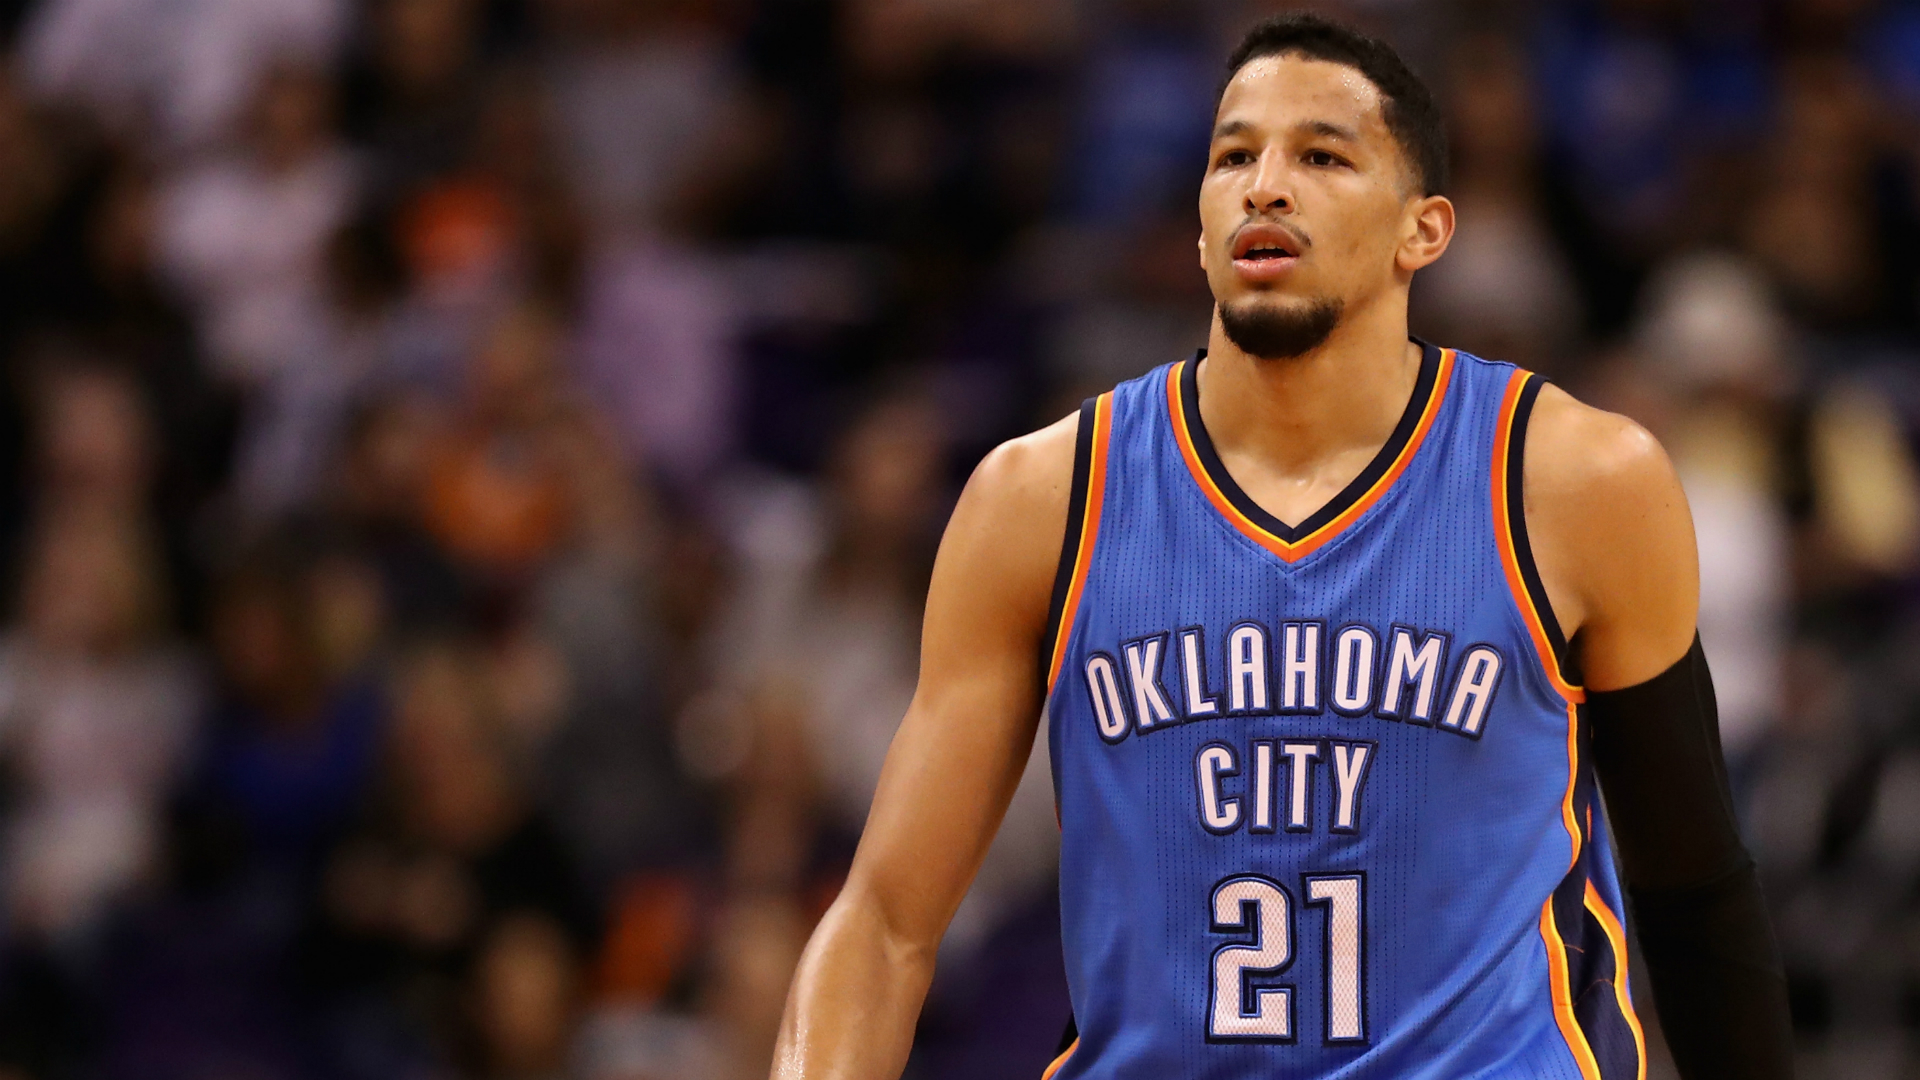 The 27-year old son of father (?) and mother(?) Andre Roberson in 2019 photo. Andre Roberson earned a  million dollar salary - leaving the net worth at  million in 2019